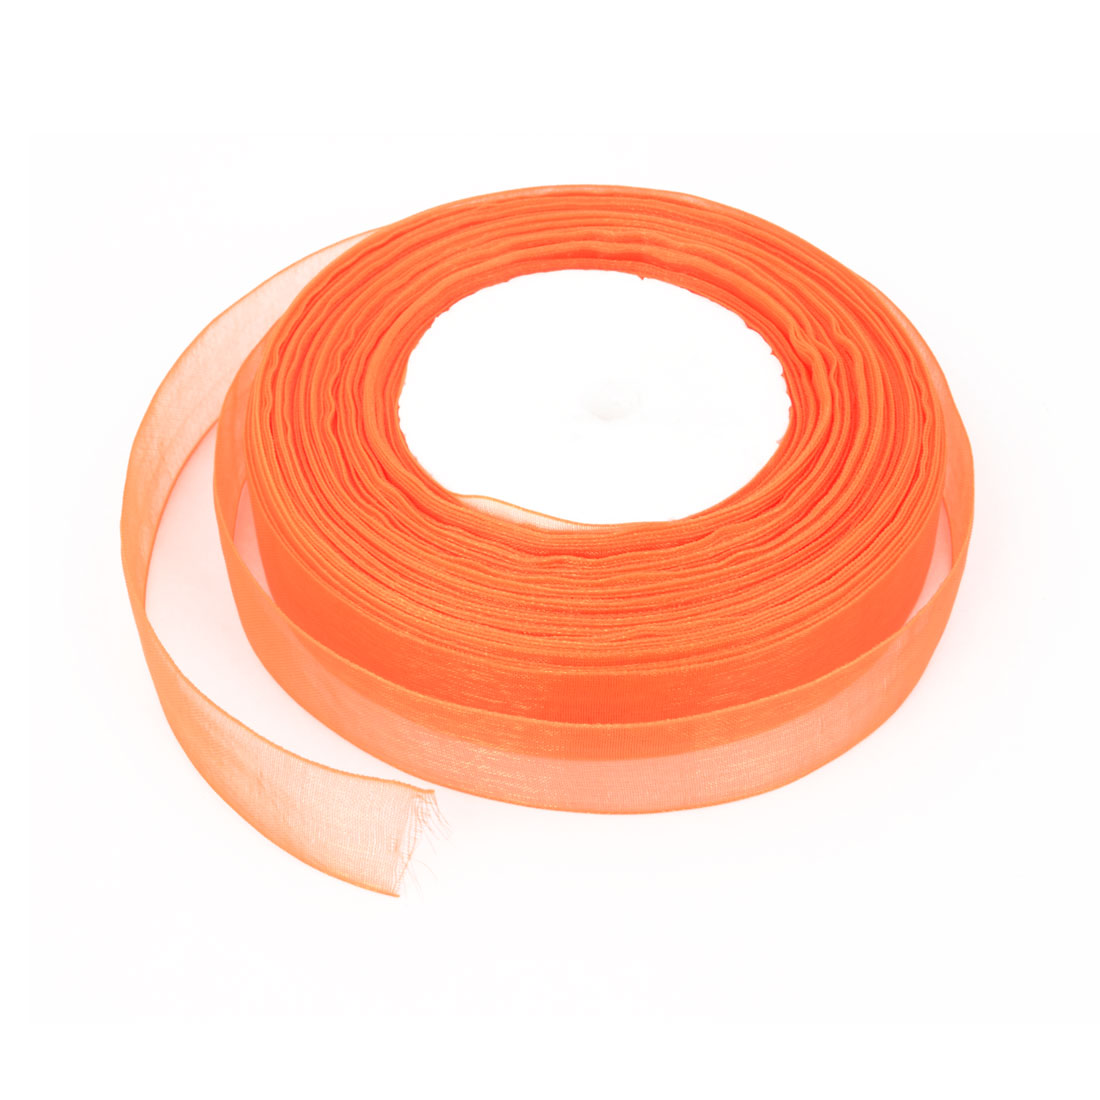 "50 Yard 0.8"" Width Gift Wrapping DIY Craft Wedding Decor Stain Edge Slim Sheer Organza Ribbon Roll Tape Orange"